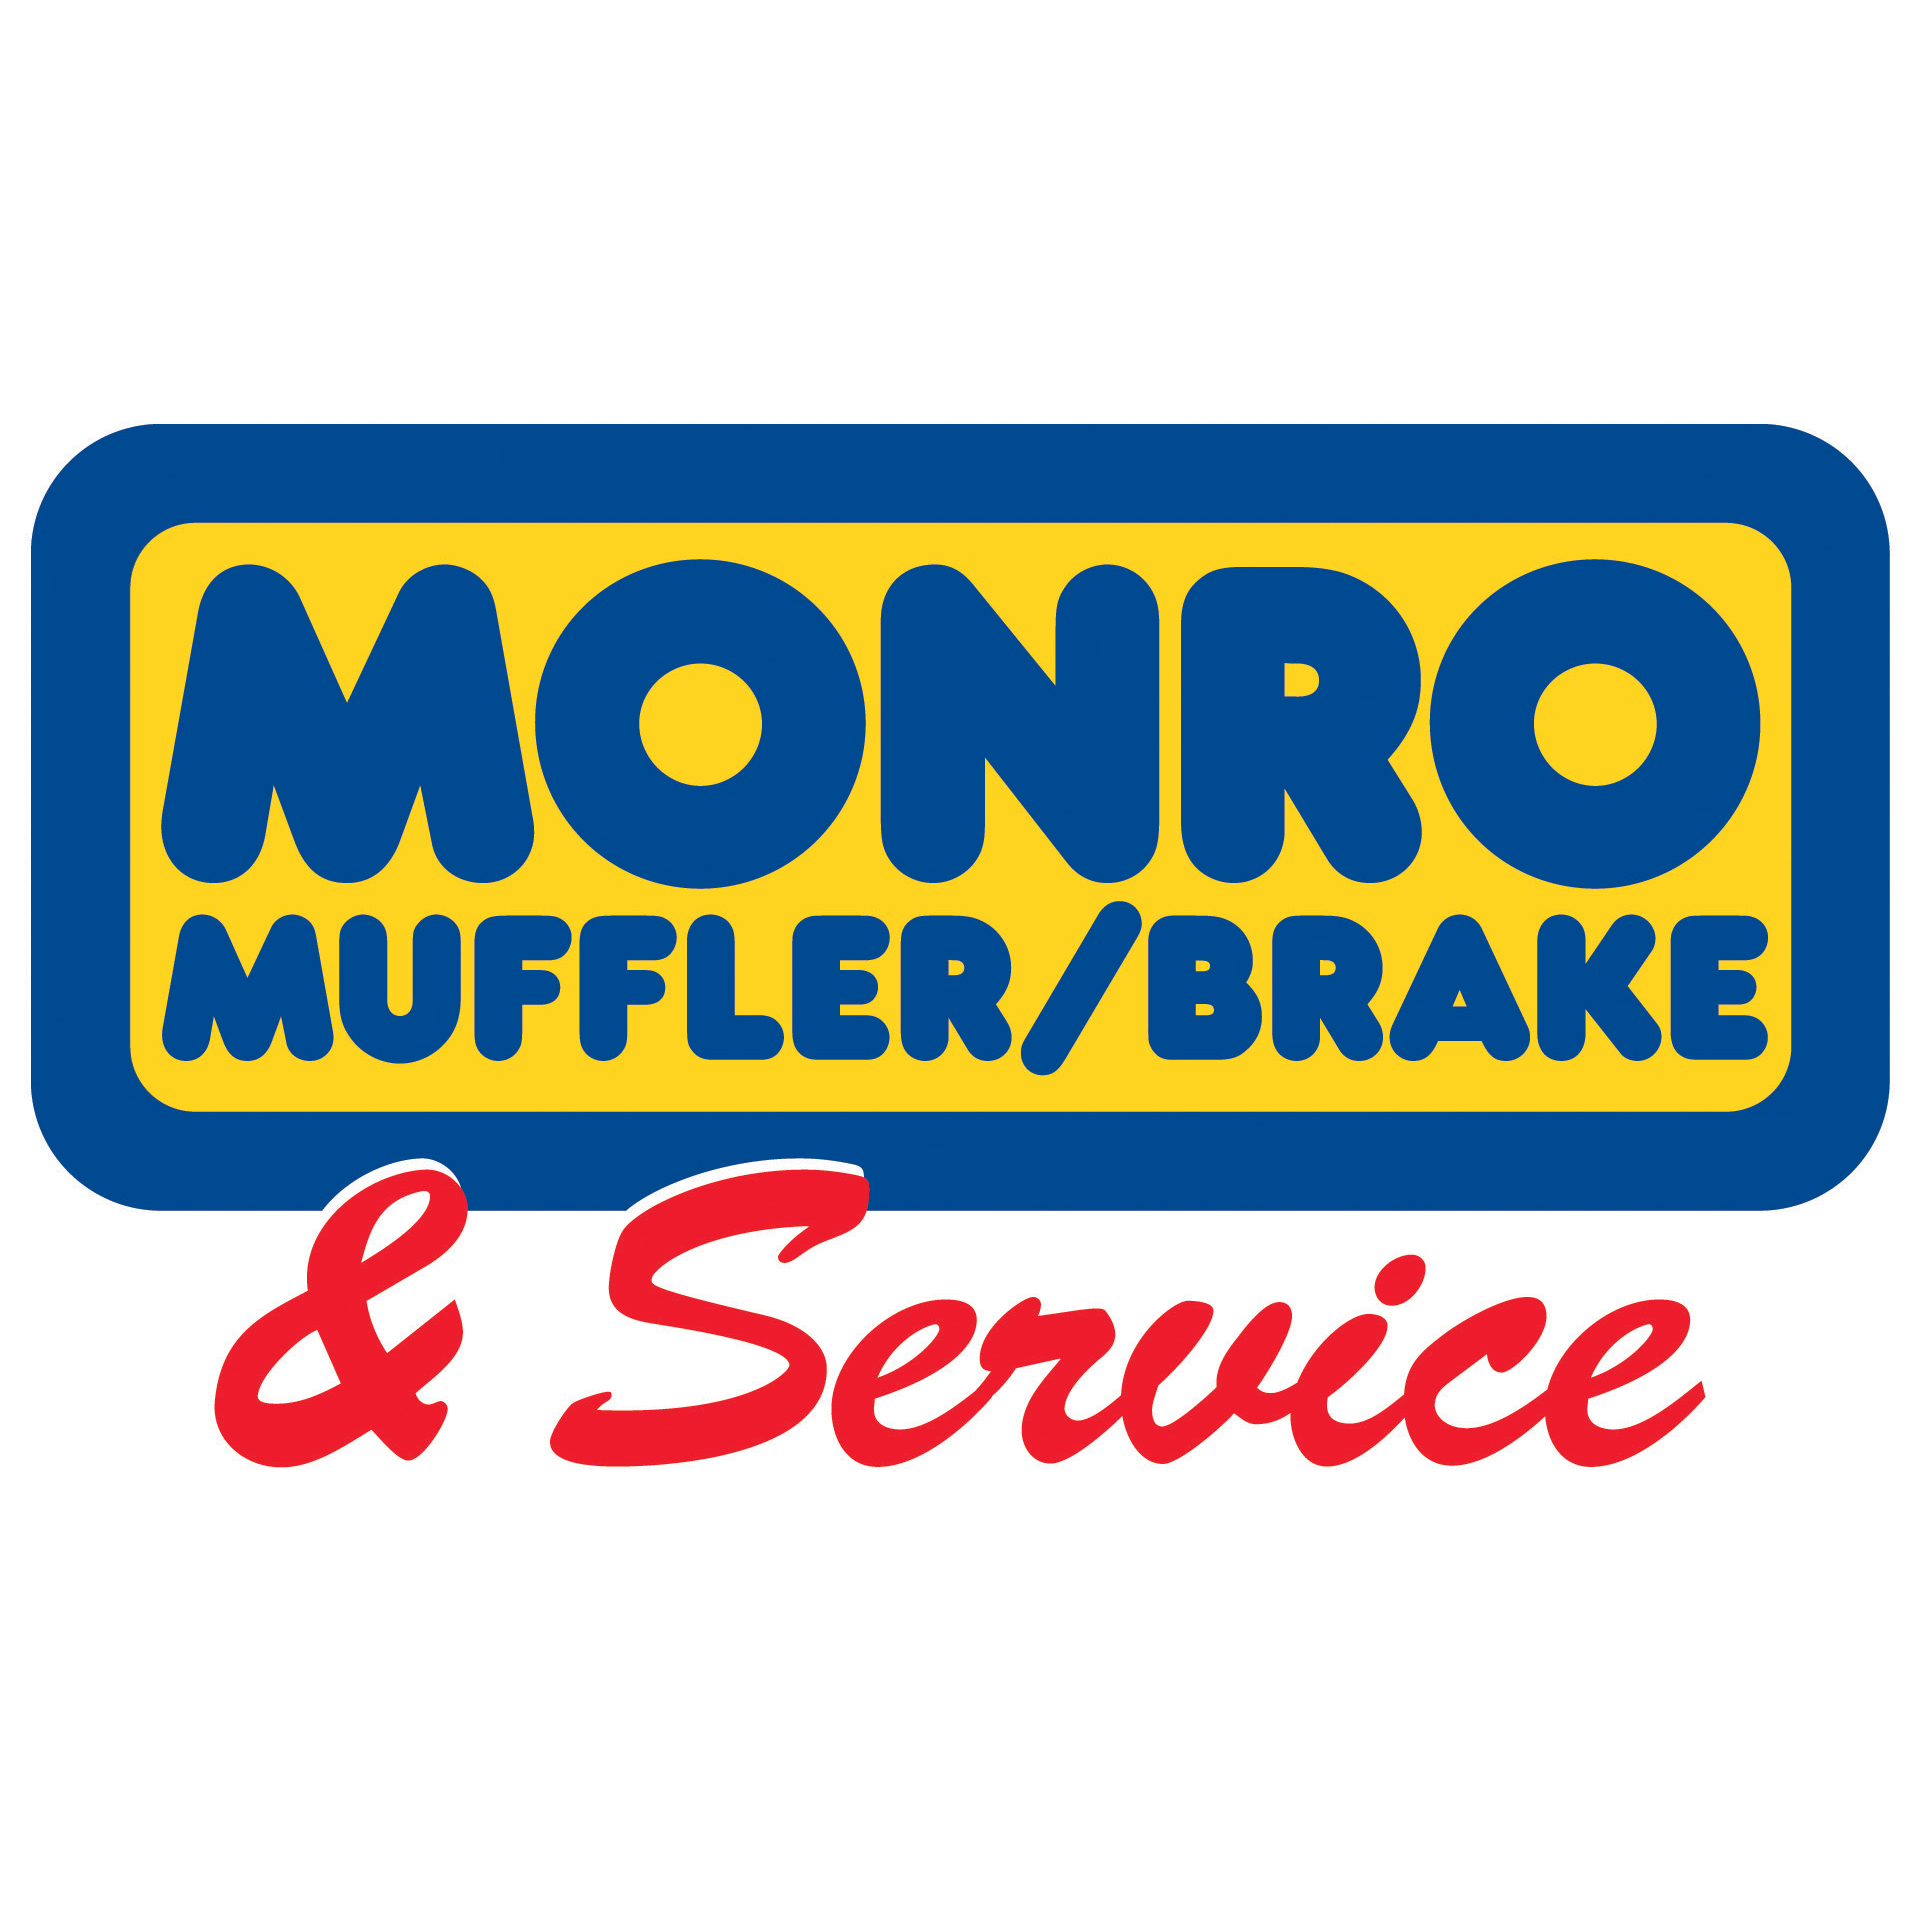 Monro Muffler Brake & Service - North Canton, OH - General Auto Repair & Service